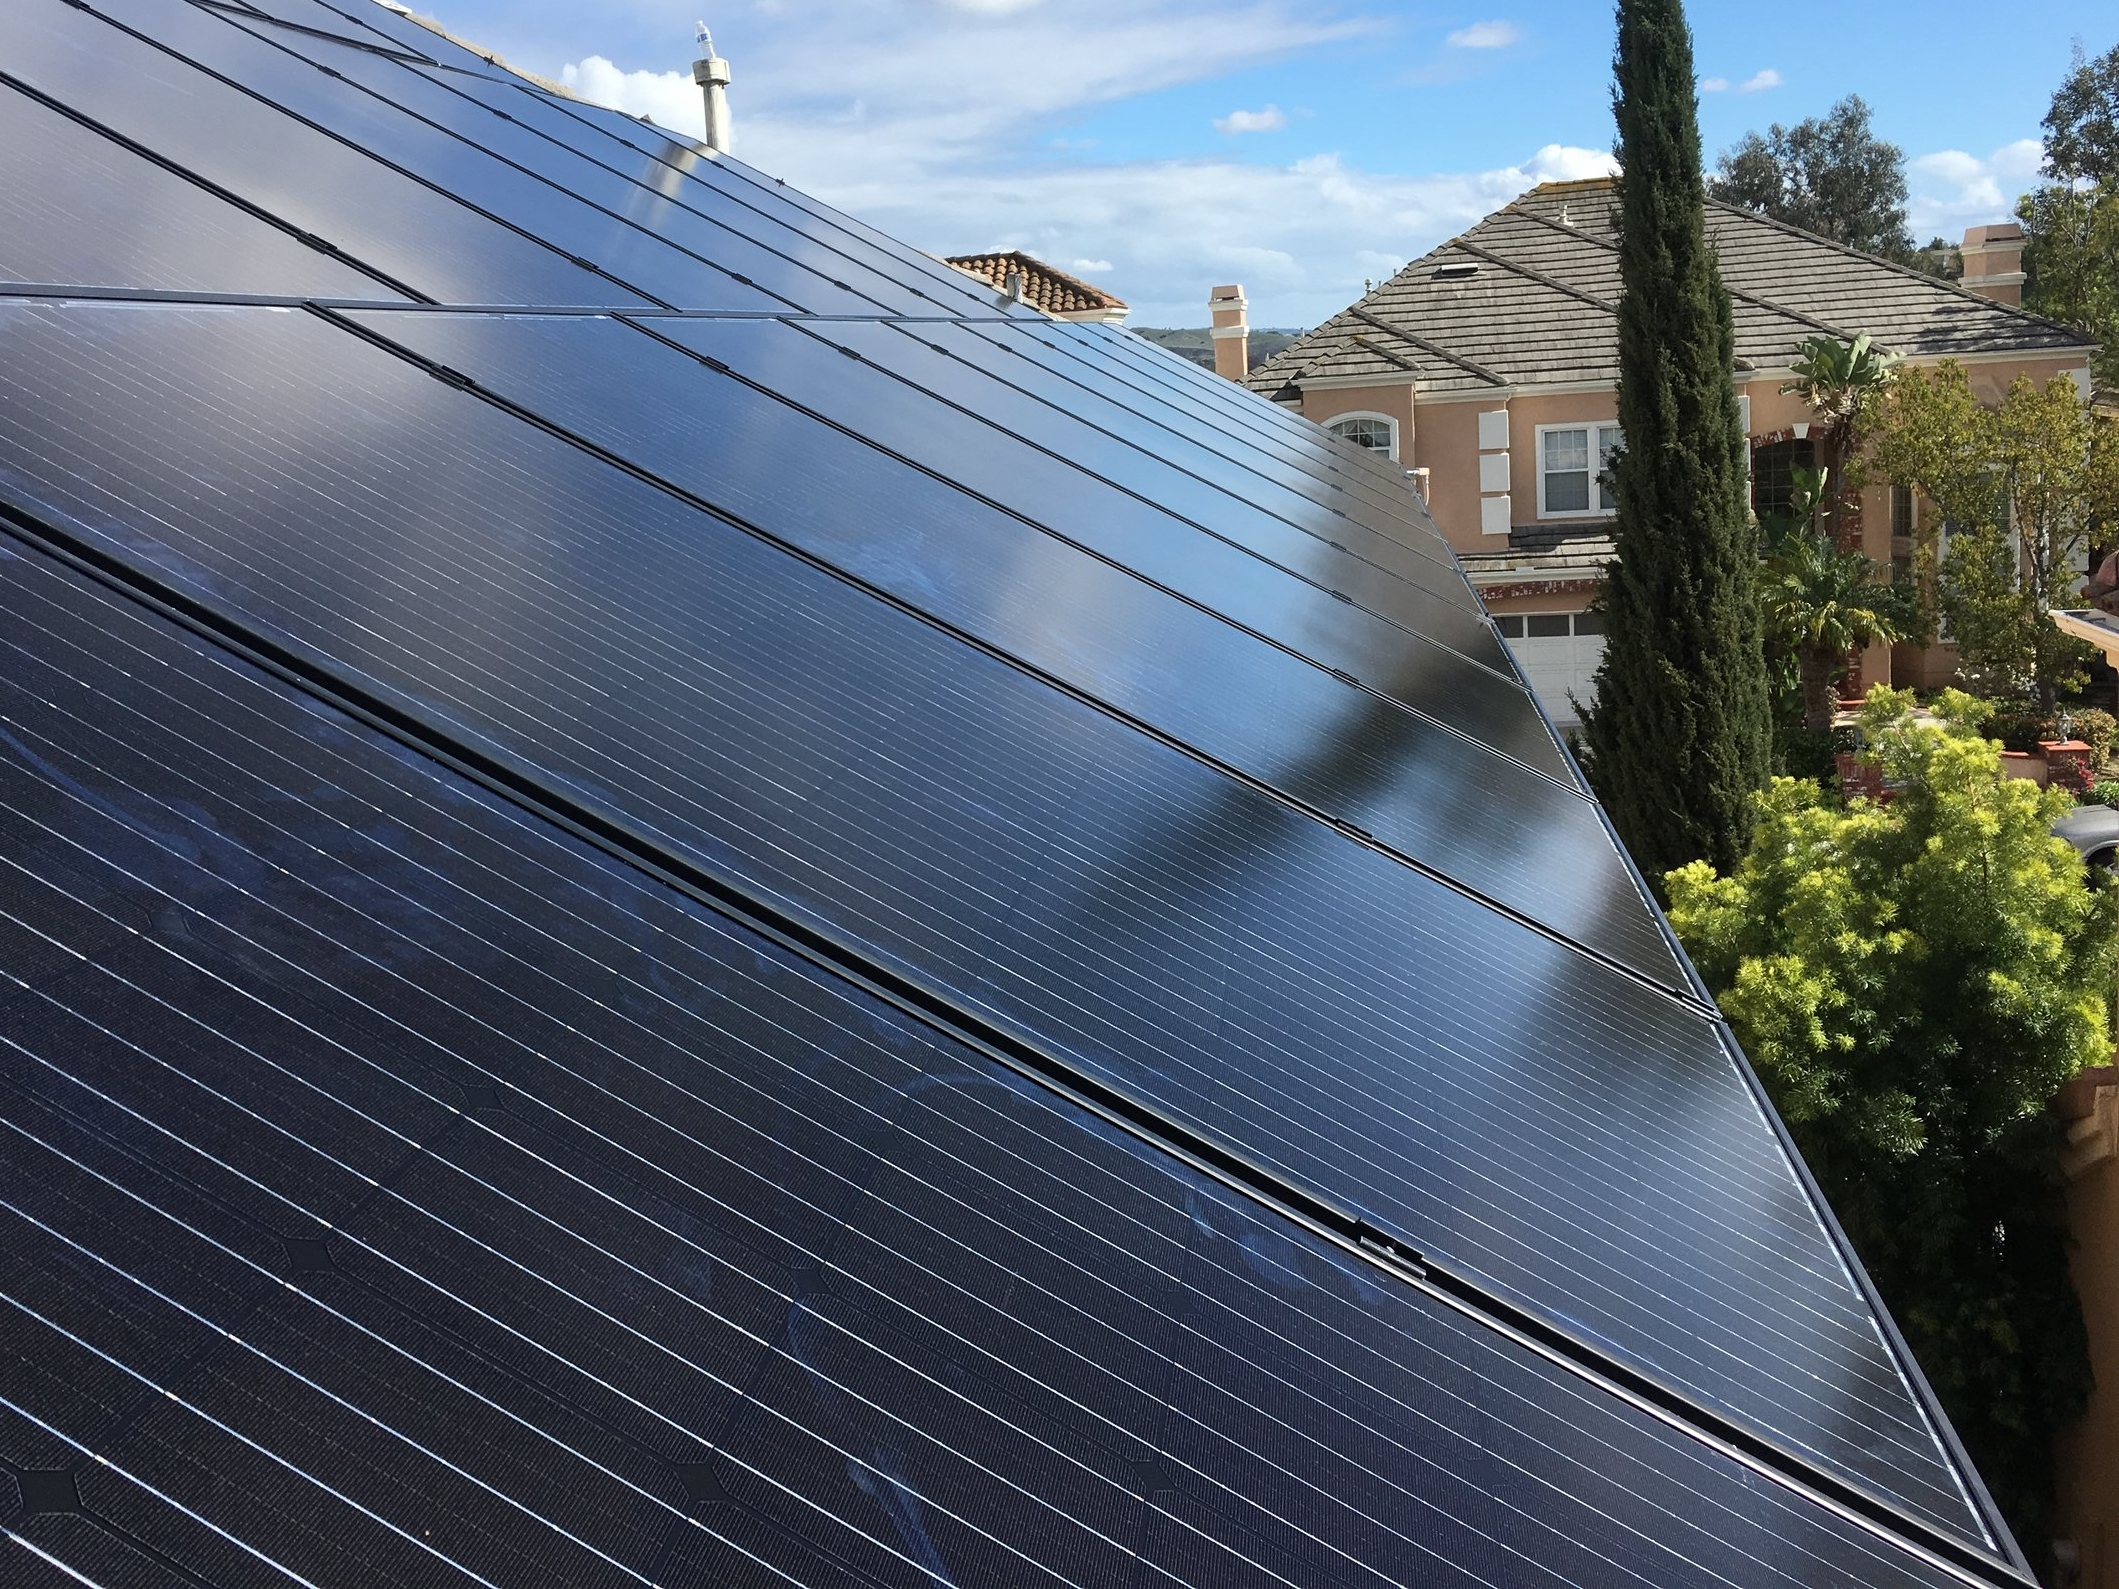 LAGUNA HILLS, CA - 33 high efficiency PV modules total to 10.23 kWDC located in Laguna Hills. This system was commissioned in 2018 and is expected to save the Homeowner over $170,000 in electricity bills over the next 25 years.